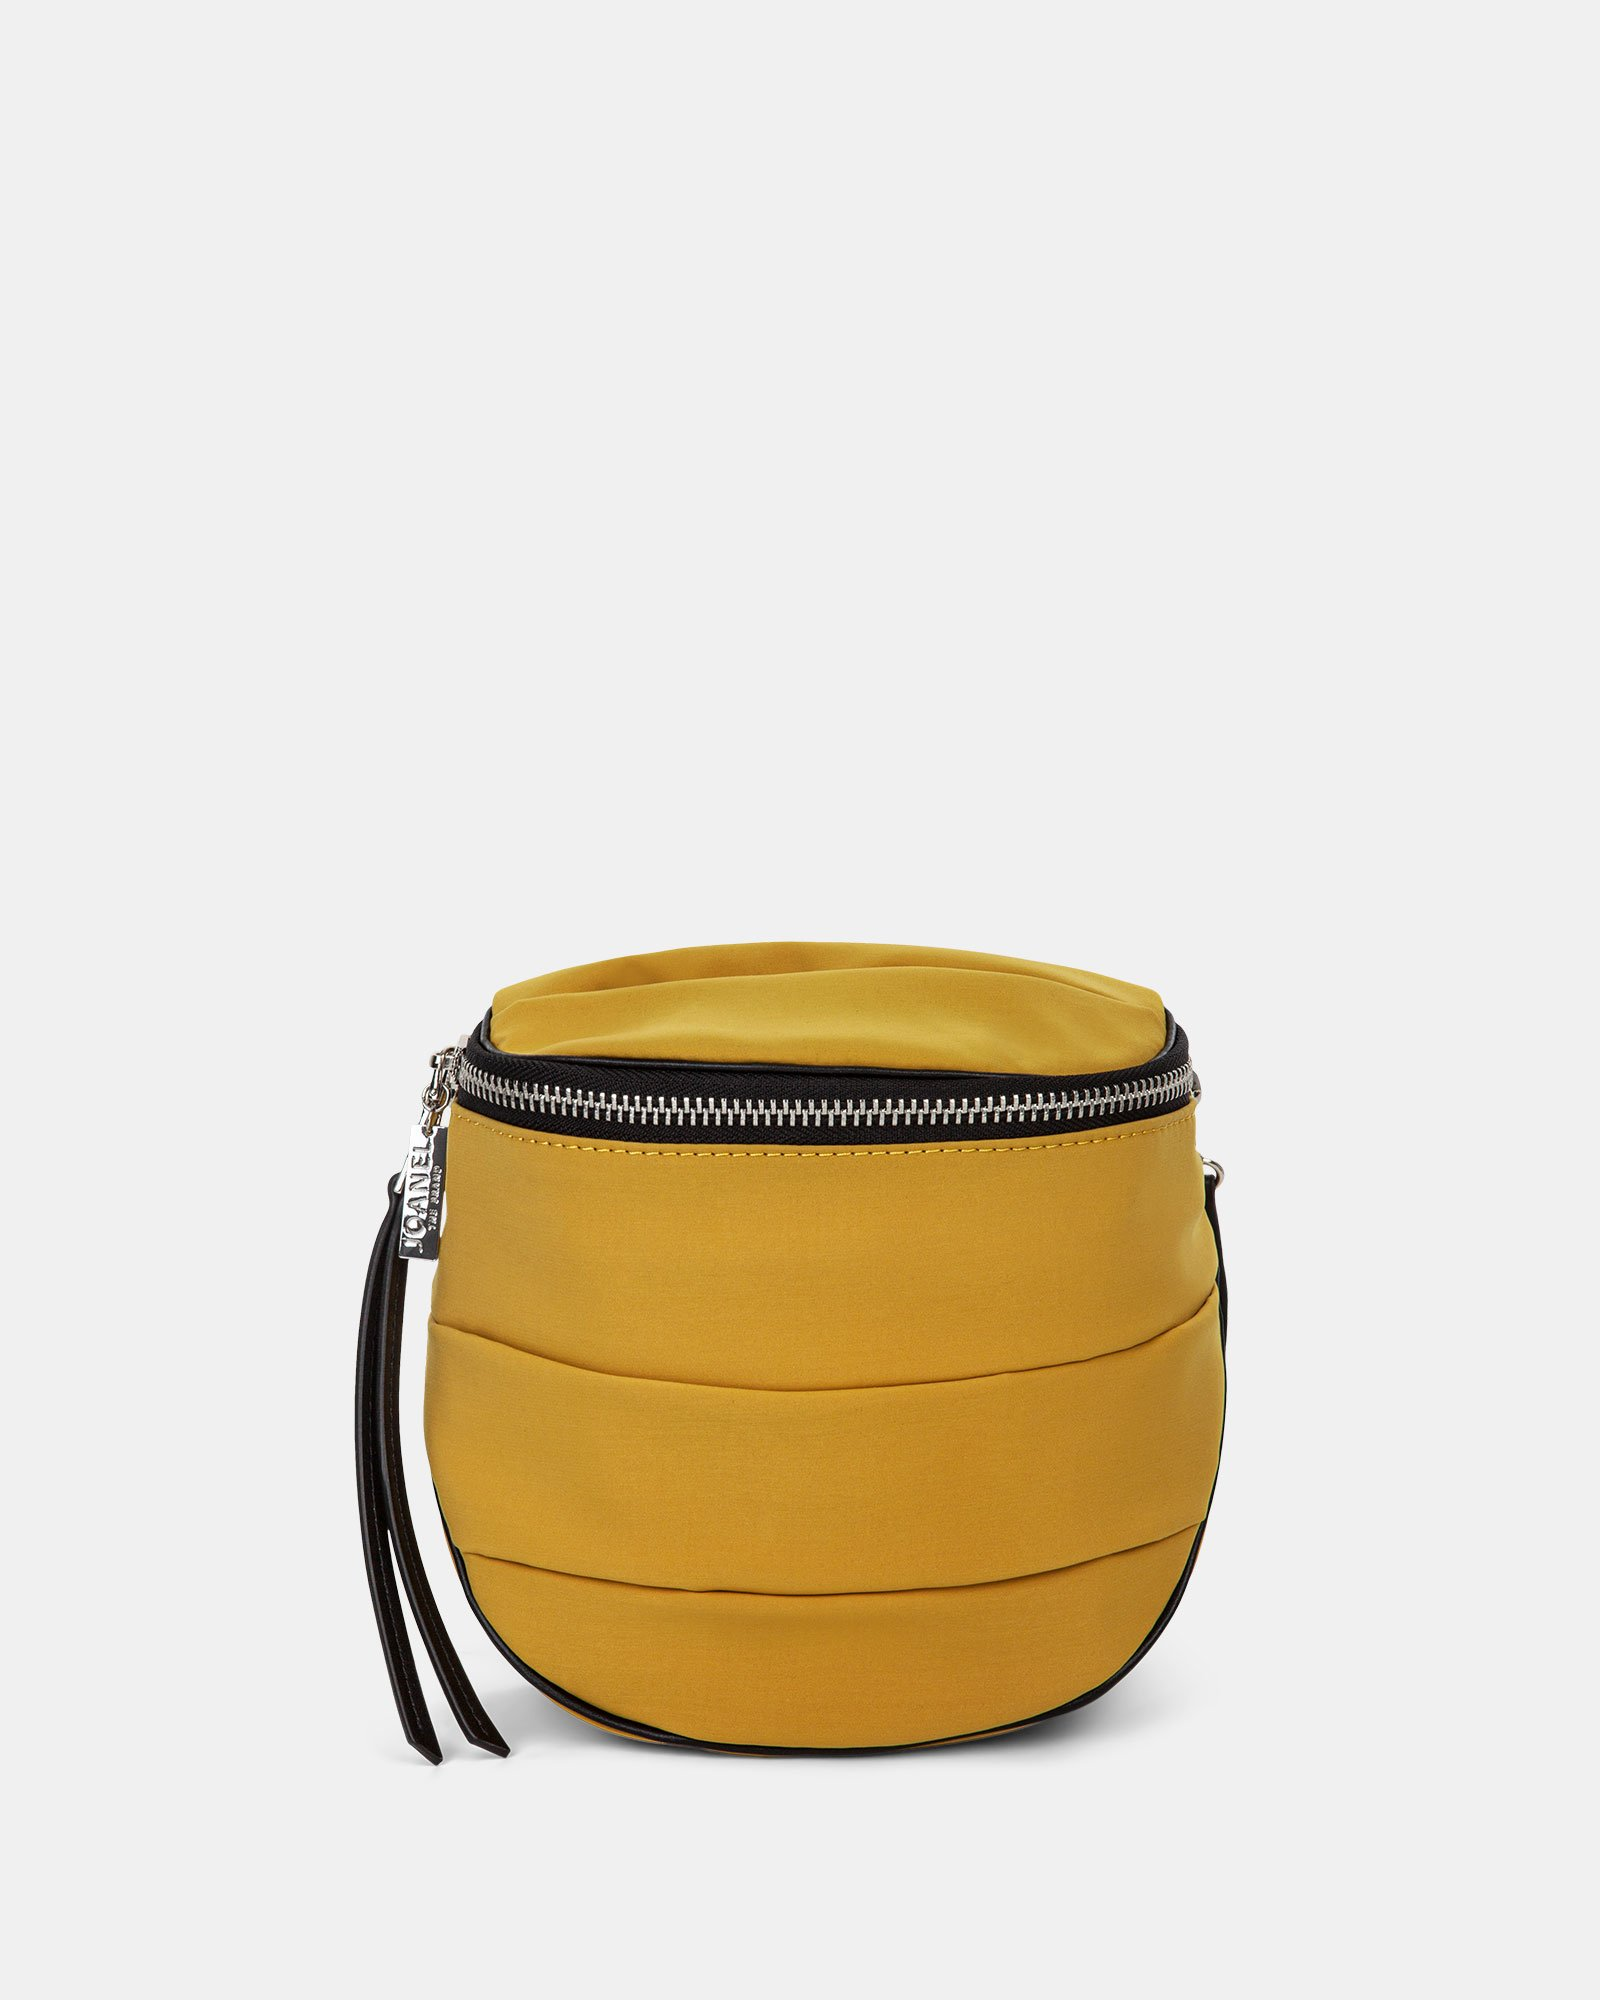 Hi Cloud - Quilted Nylon Crossbody with Main zippered compartment - Mustard - Joanel - Zoom